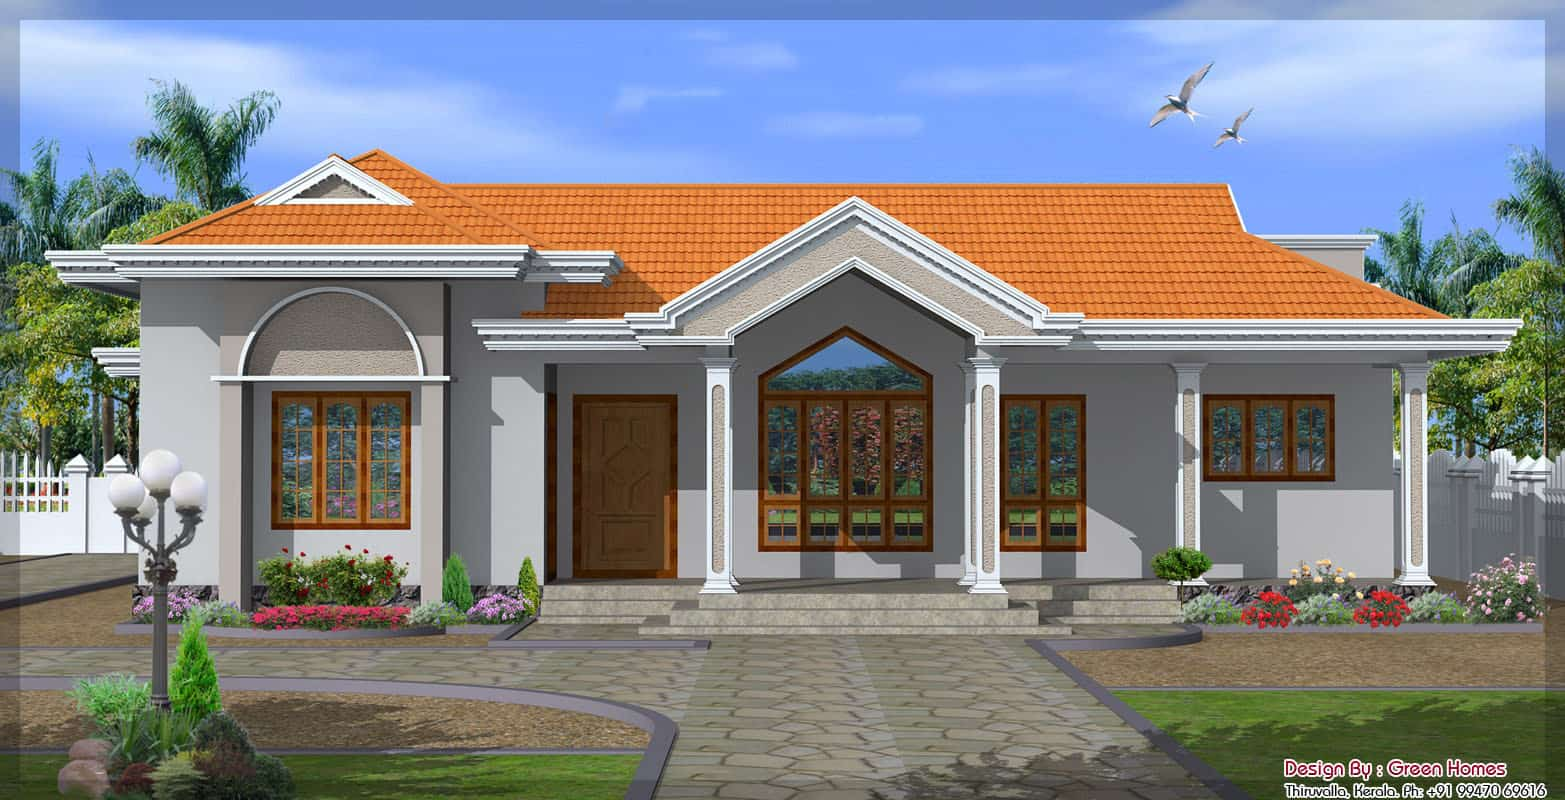 new single floor house design at 2130 sqft - Single Floor House Plans